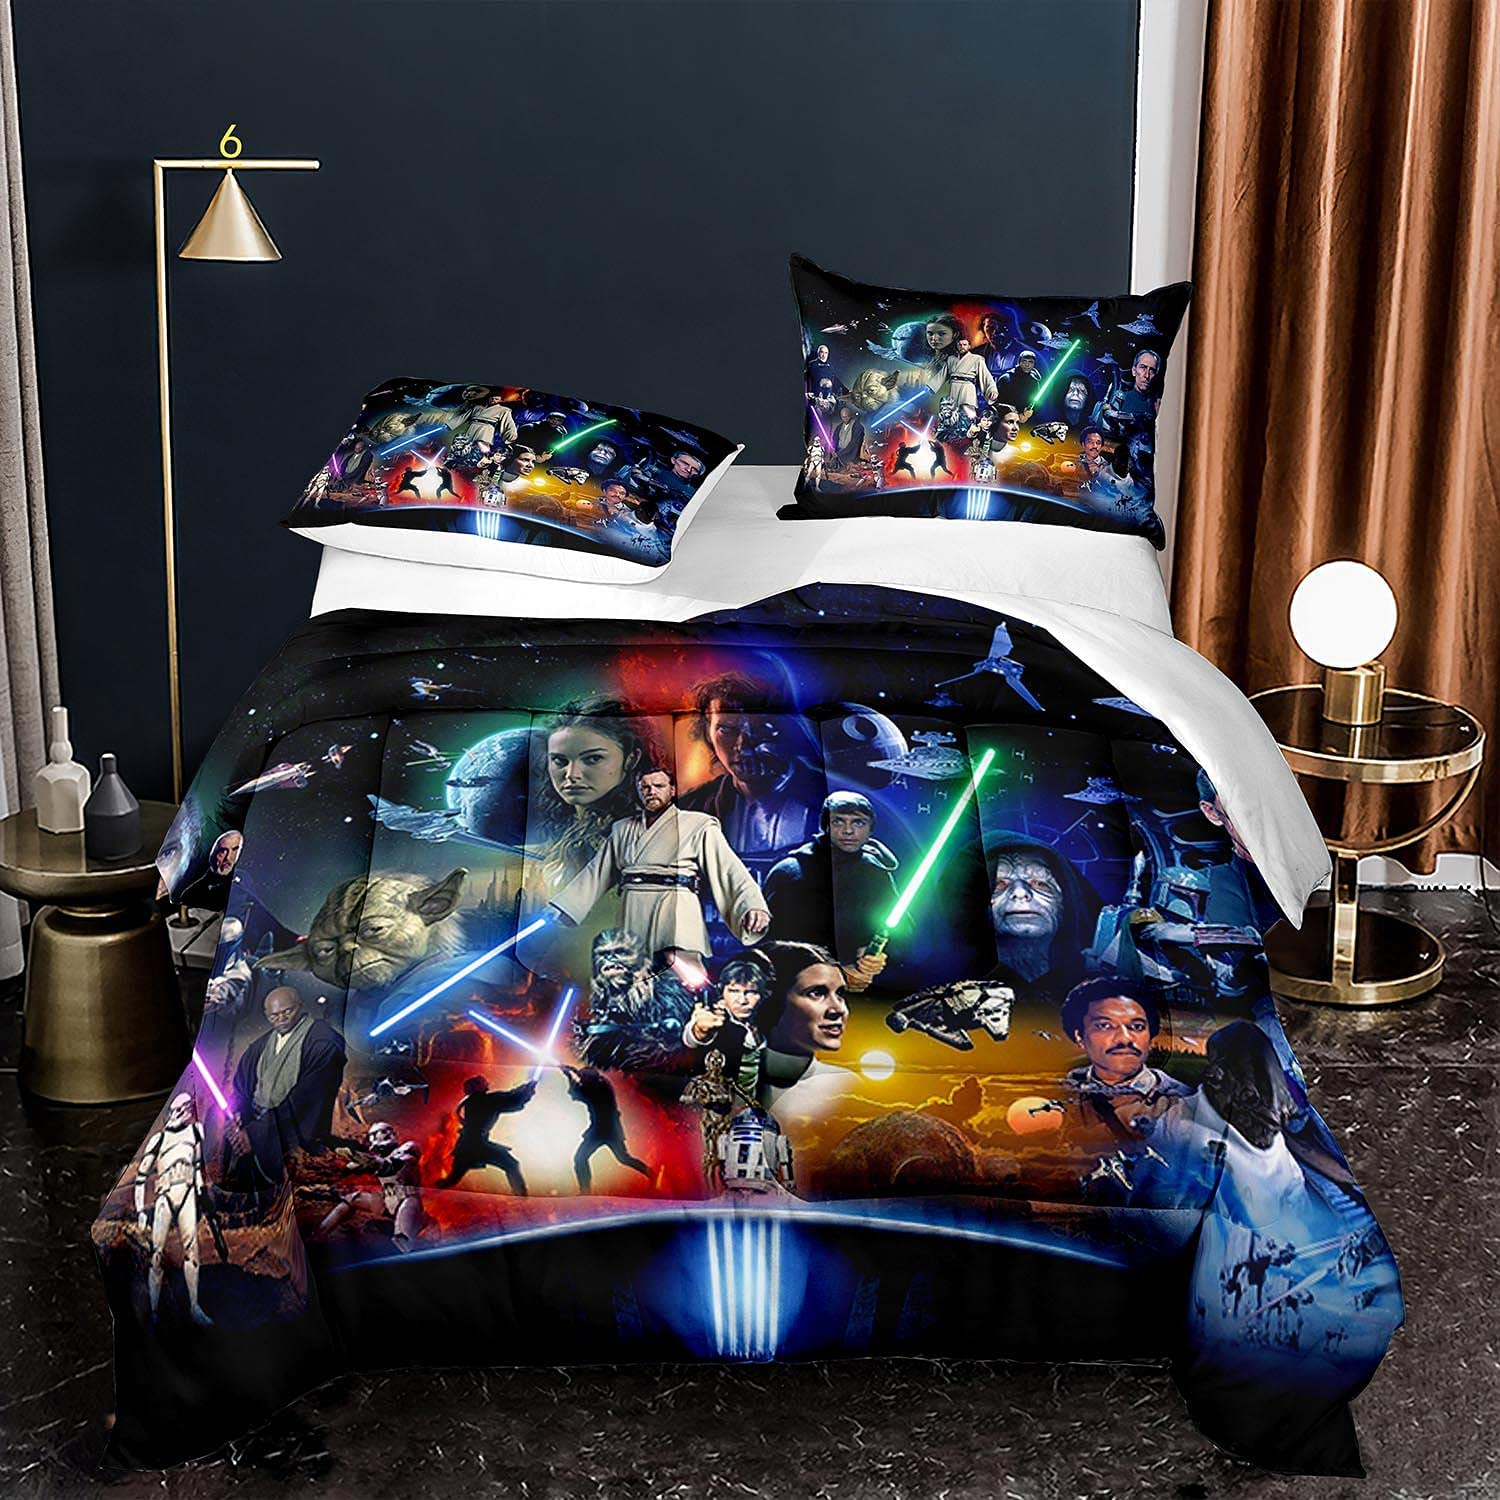 Tianzhihe Star-Wars Bedding Large special price Set A surprise price is realized Twin Set, Adult Size Boys Blac